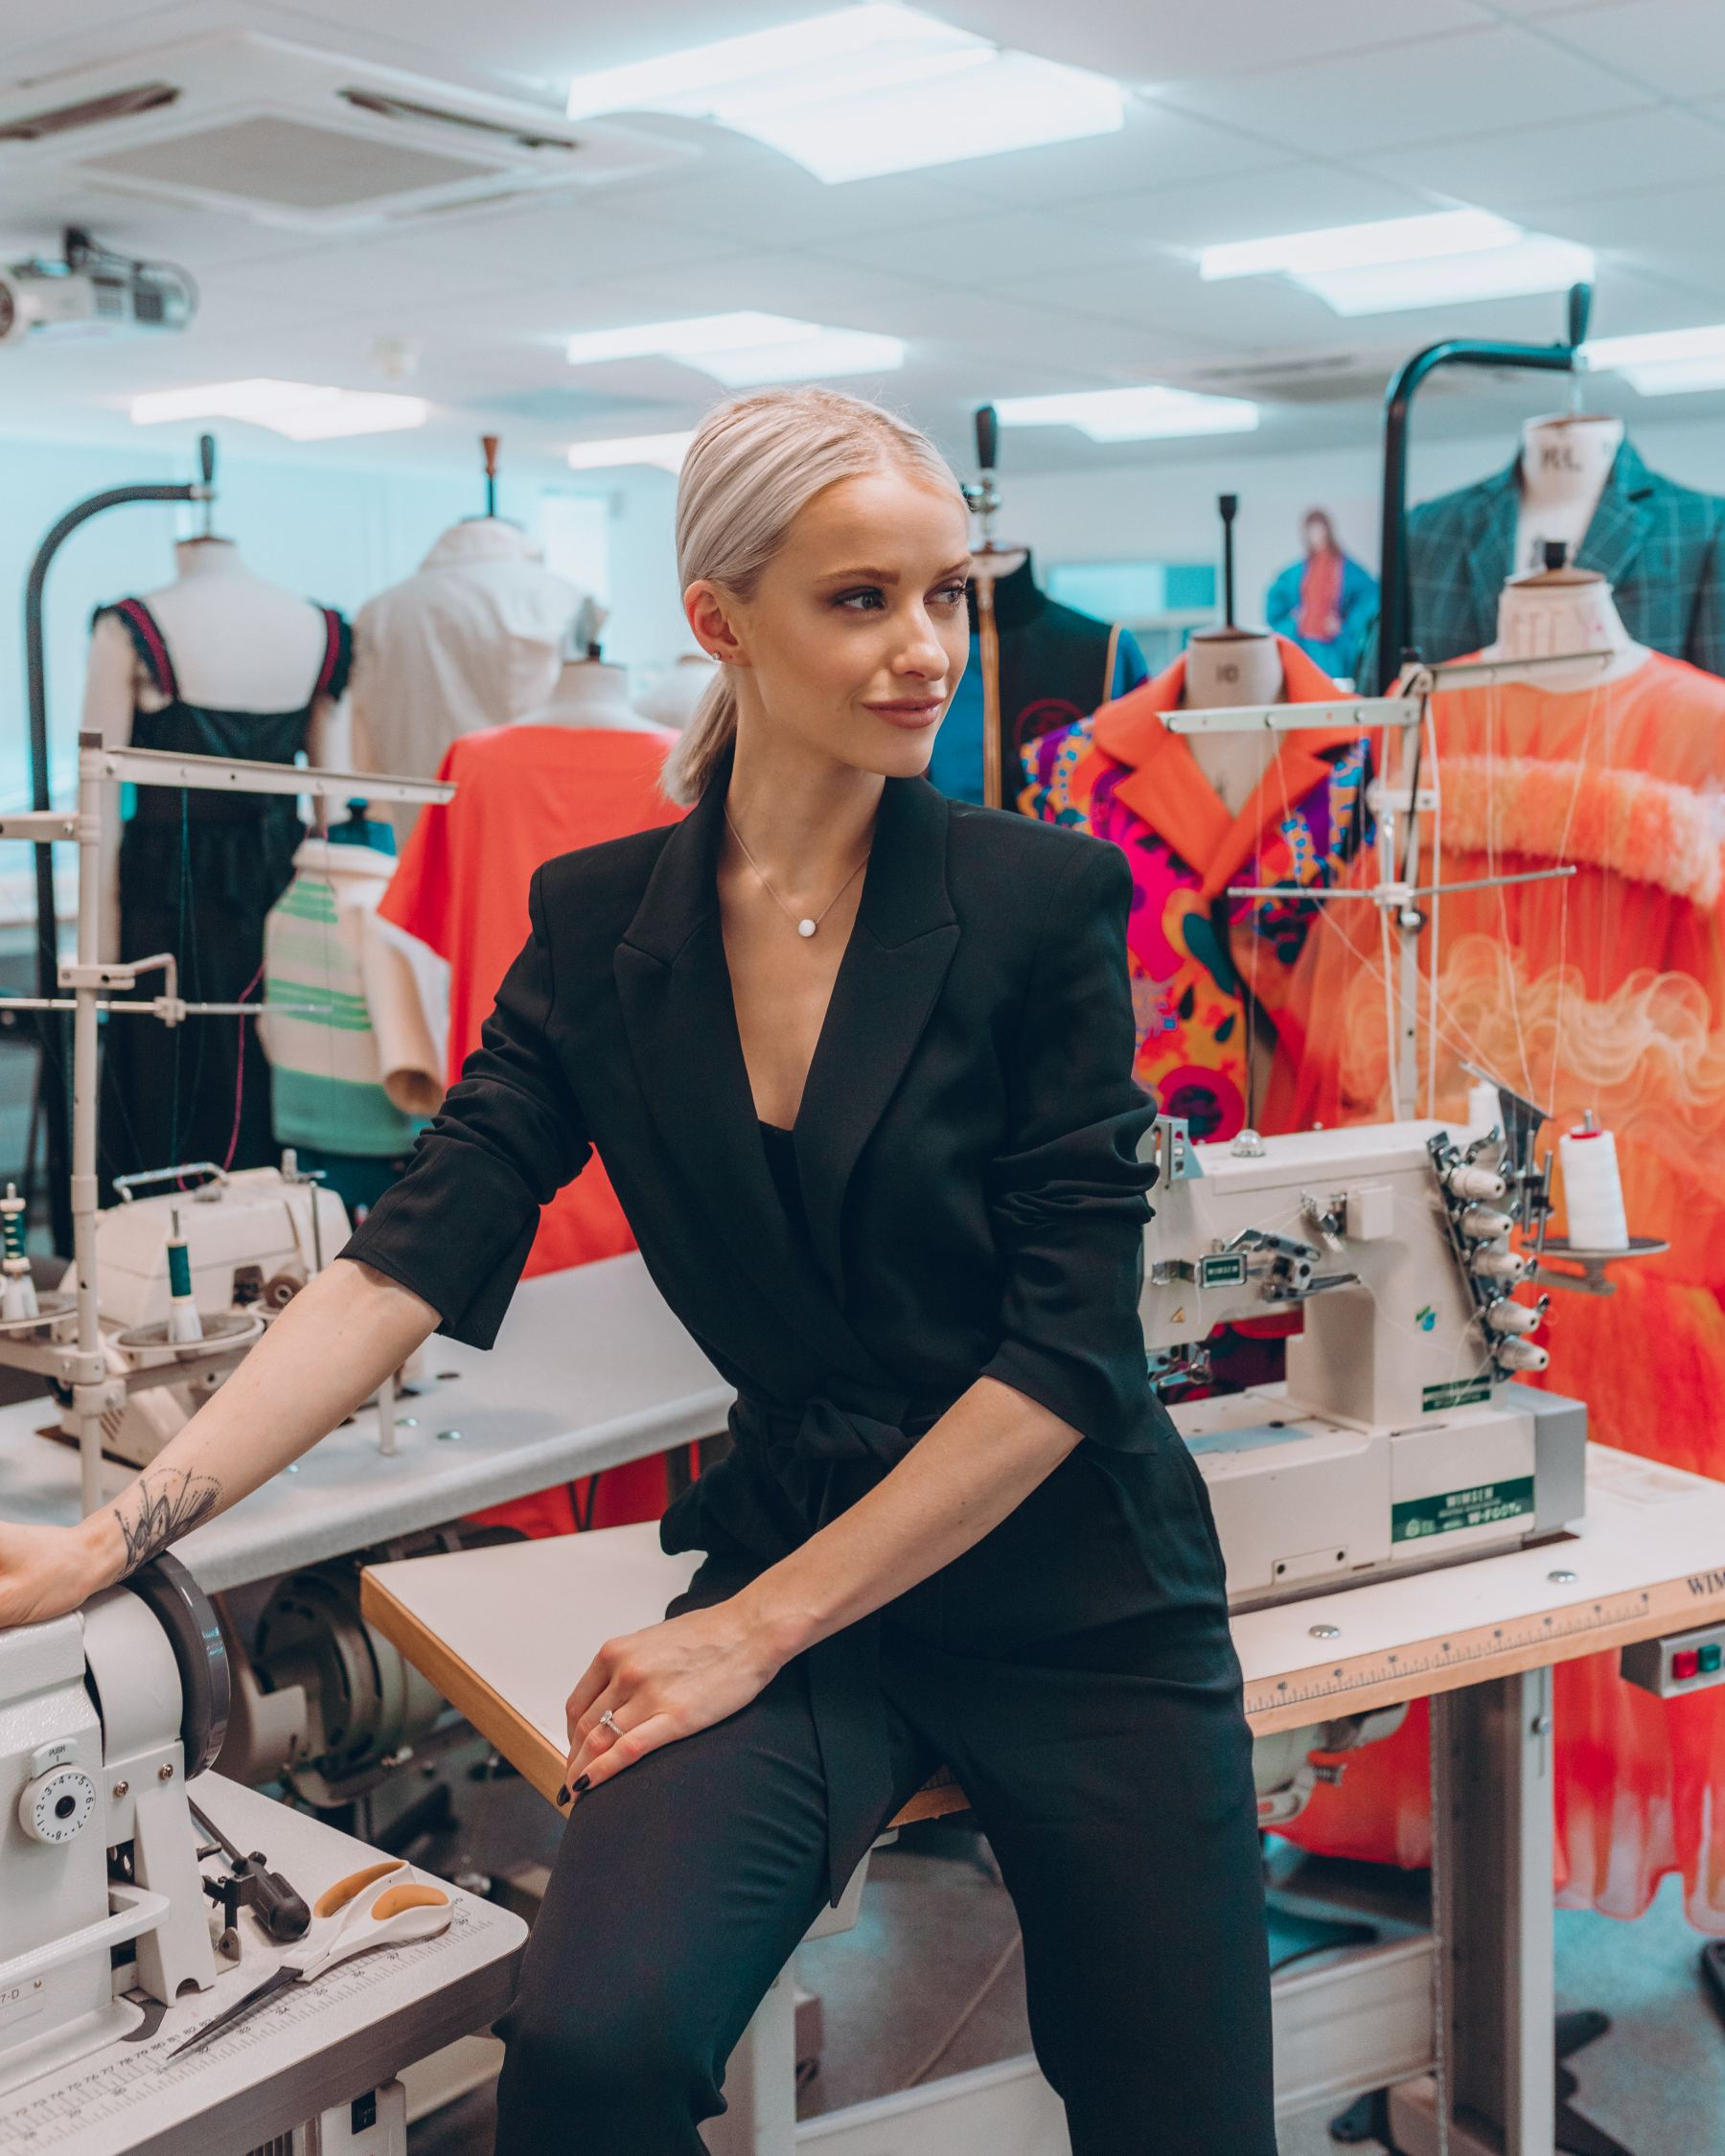 Do You Want To Study Fashion Design A Scholarship Opportunity You Need To Know About Inthefrow